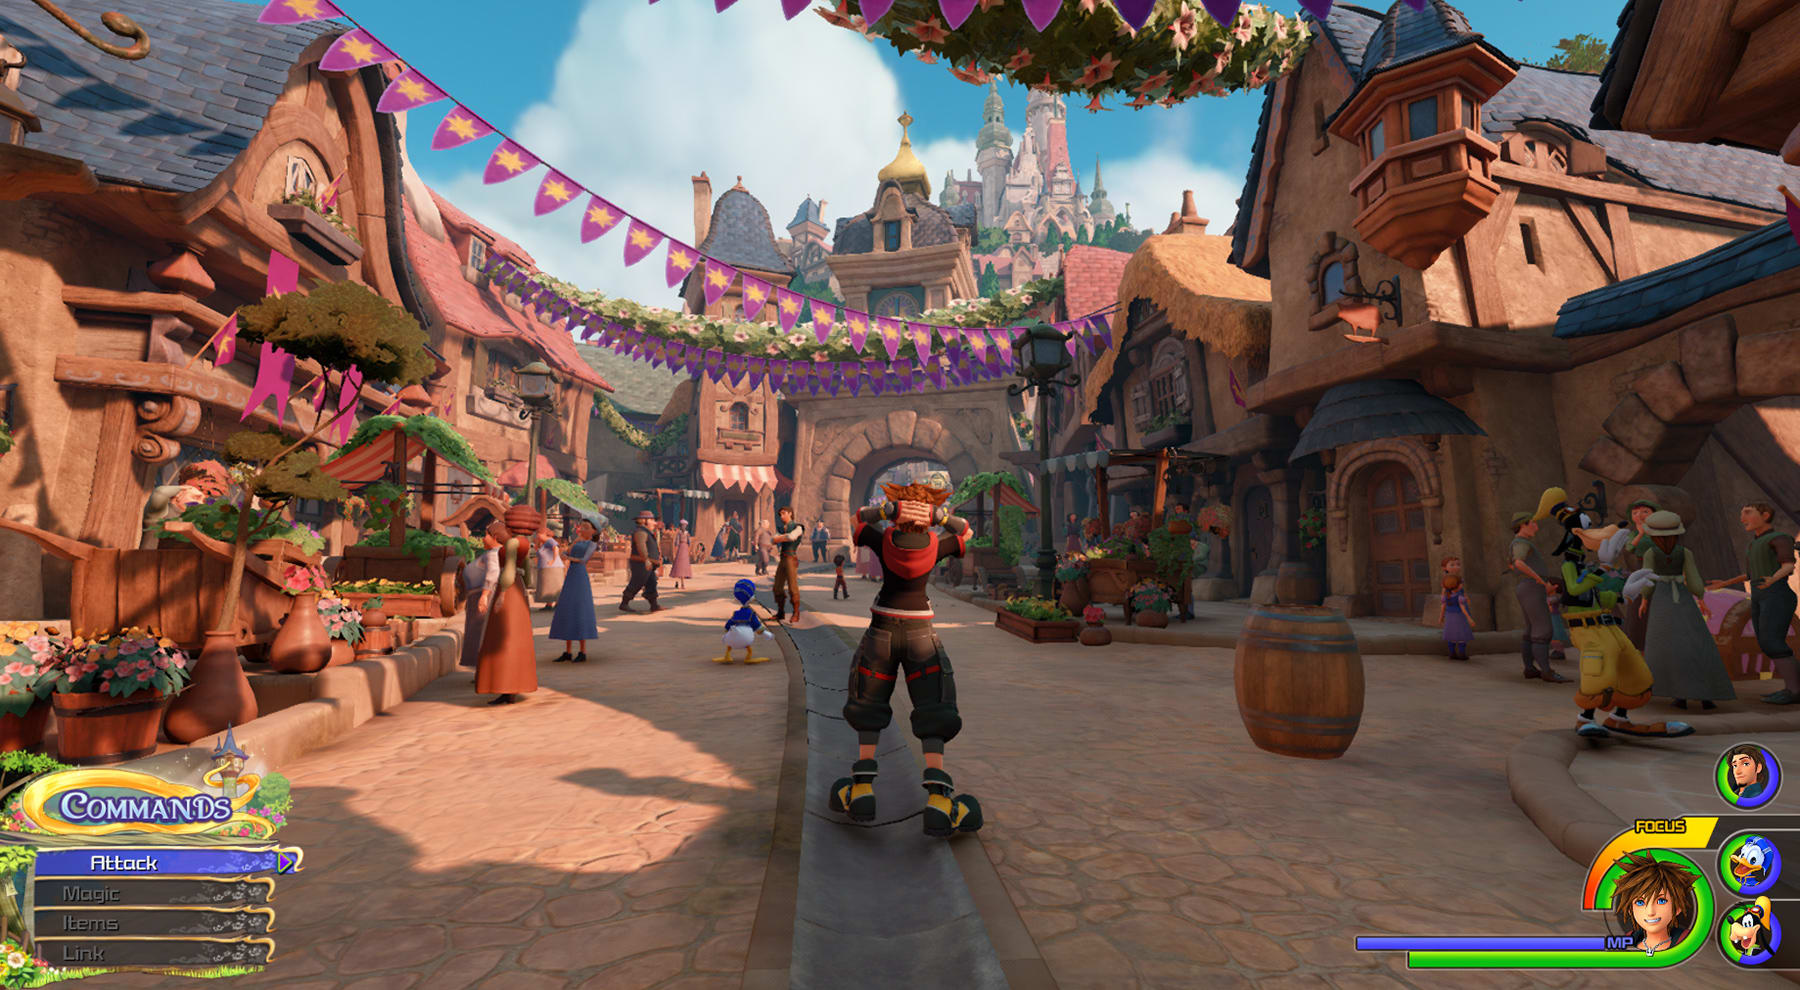 Kingdom Hearts 3' brings you closer than ever to Disney's worlds